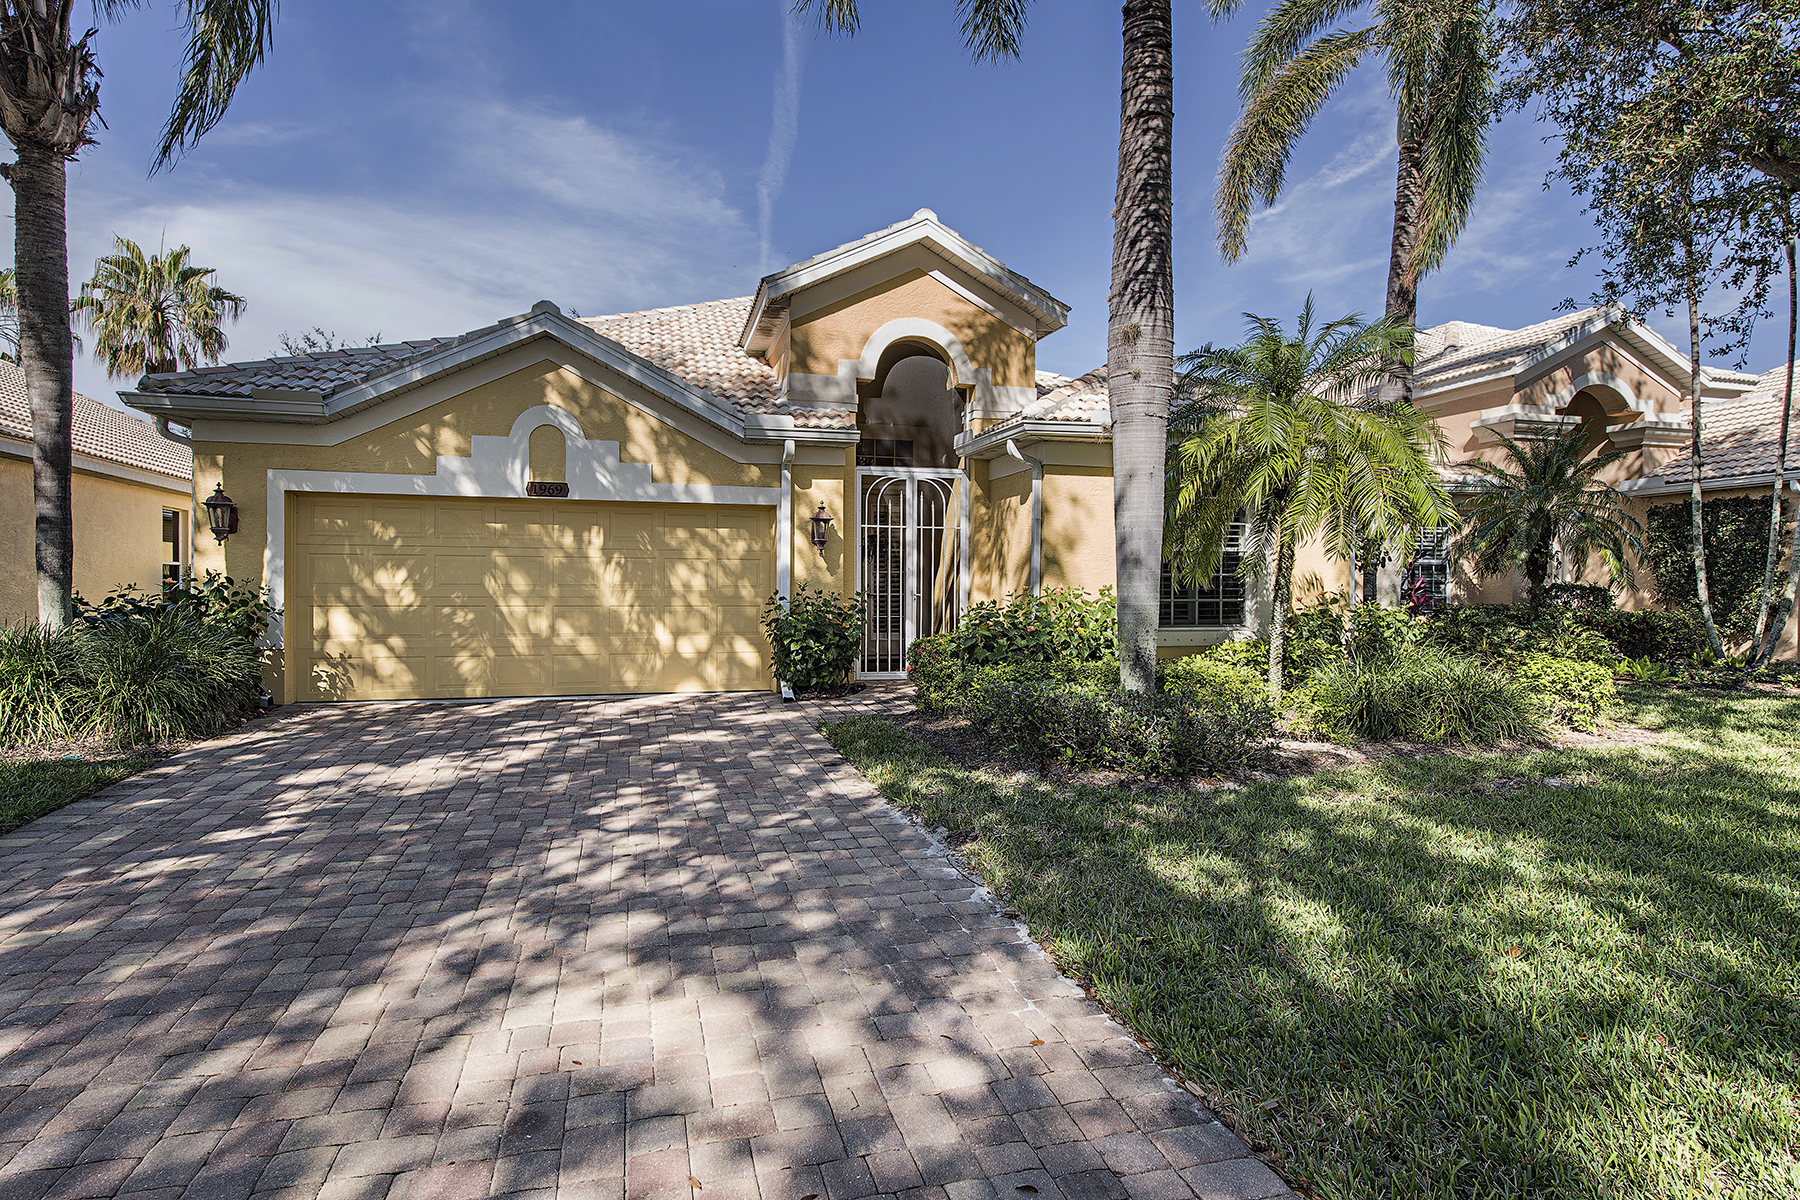 Single Family Home for Sale at PELICAN MARSH - TIMARRON 1969 Timarron Way, Naples, Florida 34109 United States